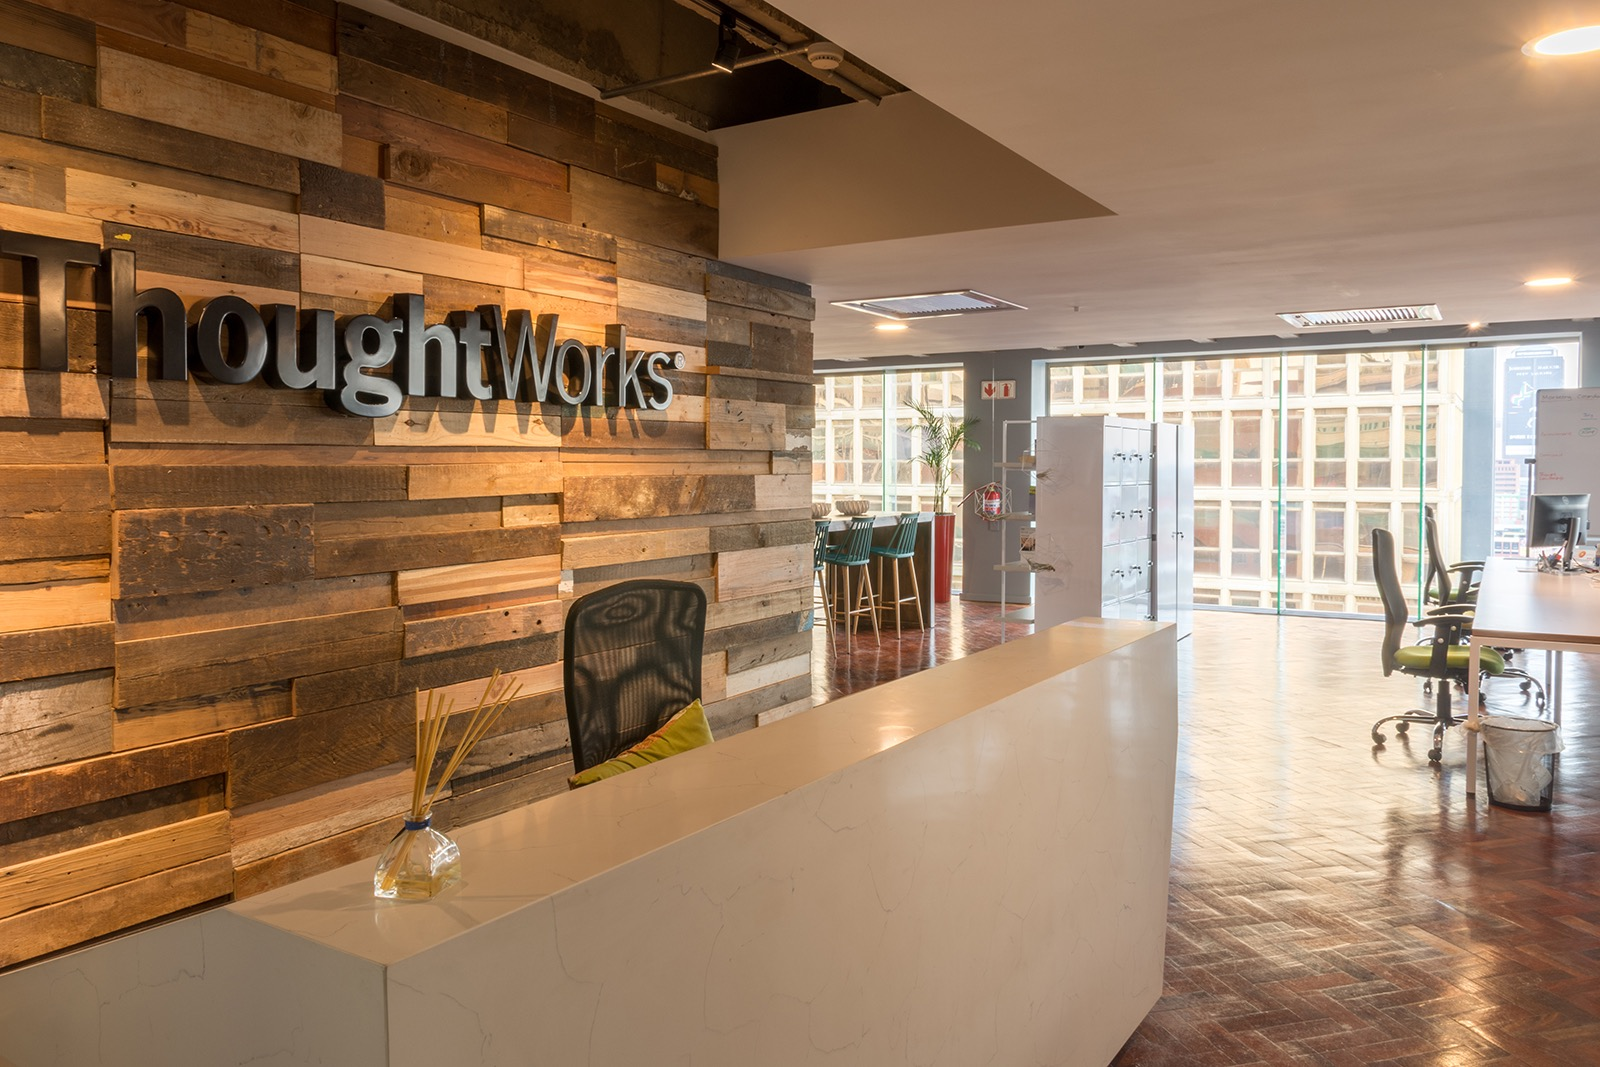 thoughworks-office-5